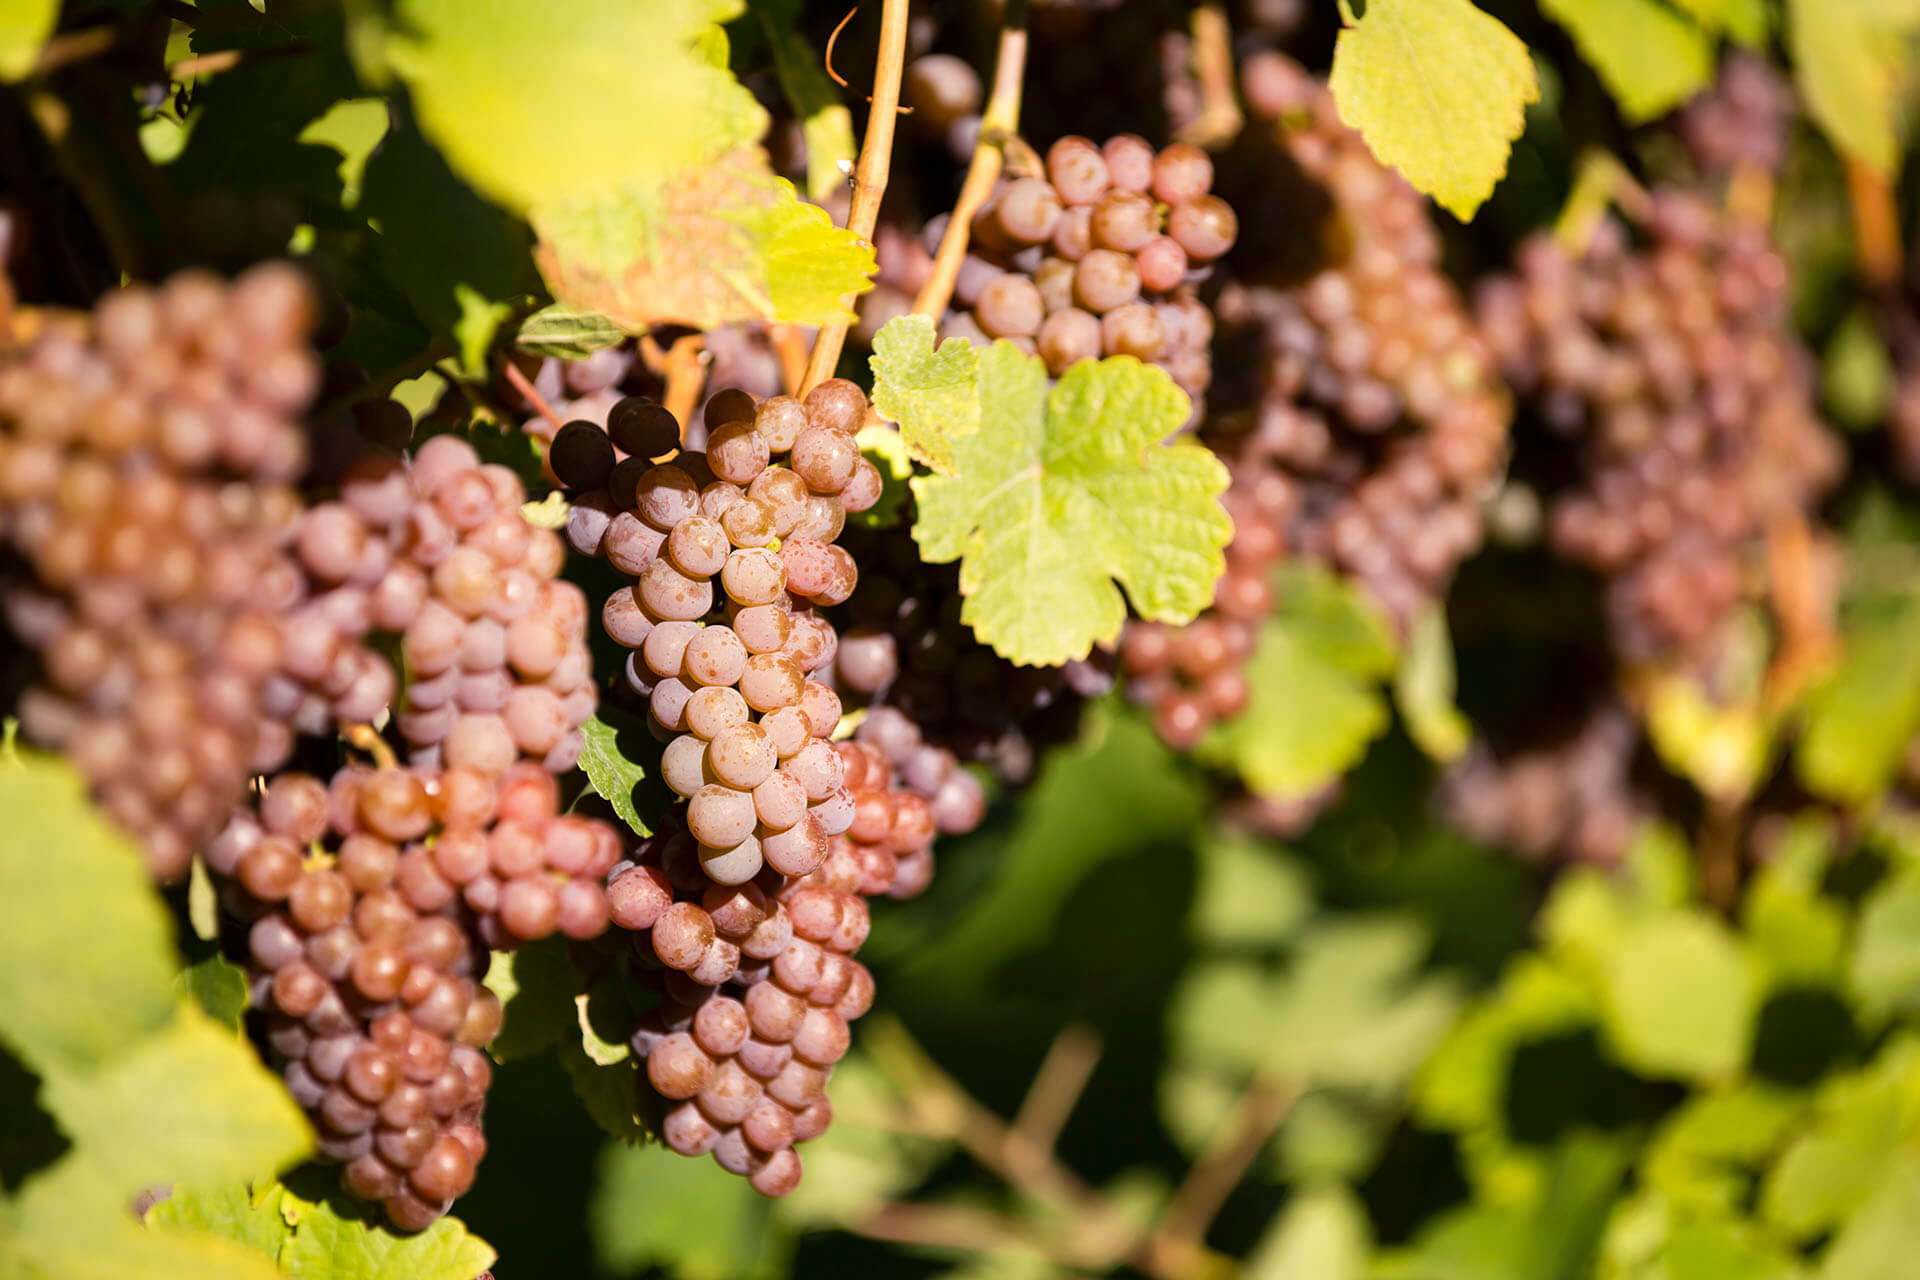 Pinot Gris Grapes on the Vine